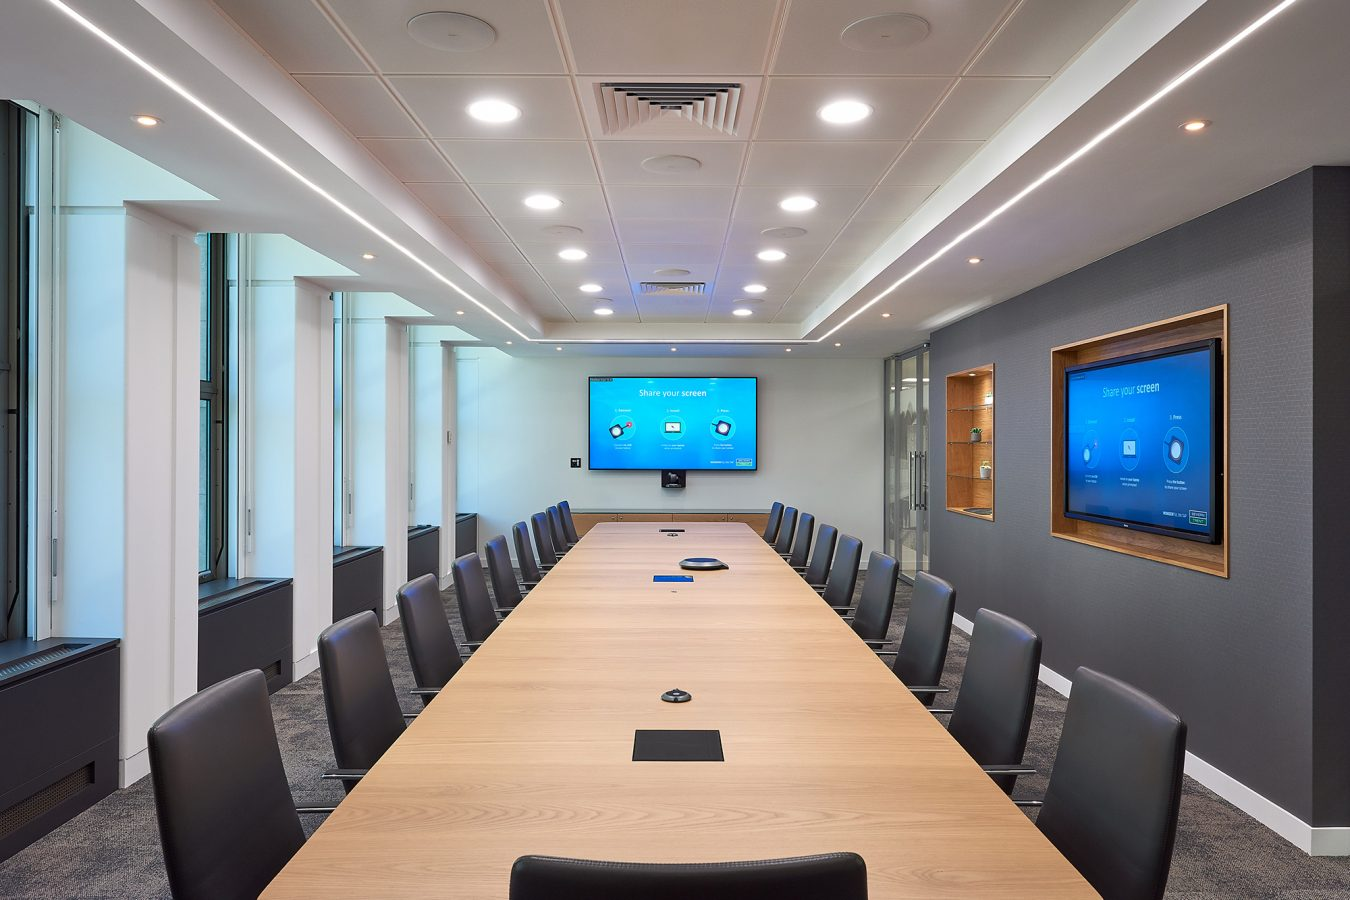 A meeting room for office relocation with modern technology and functional furniture is increasing productivity and enriching company culture.